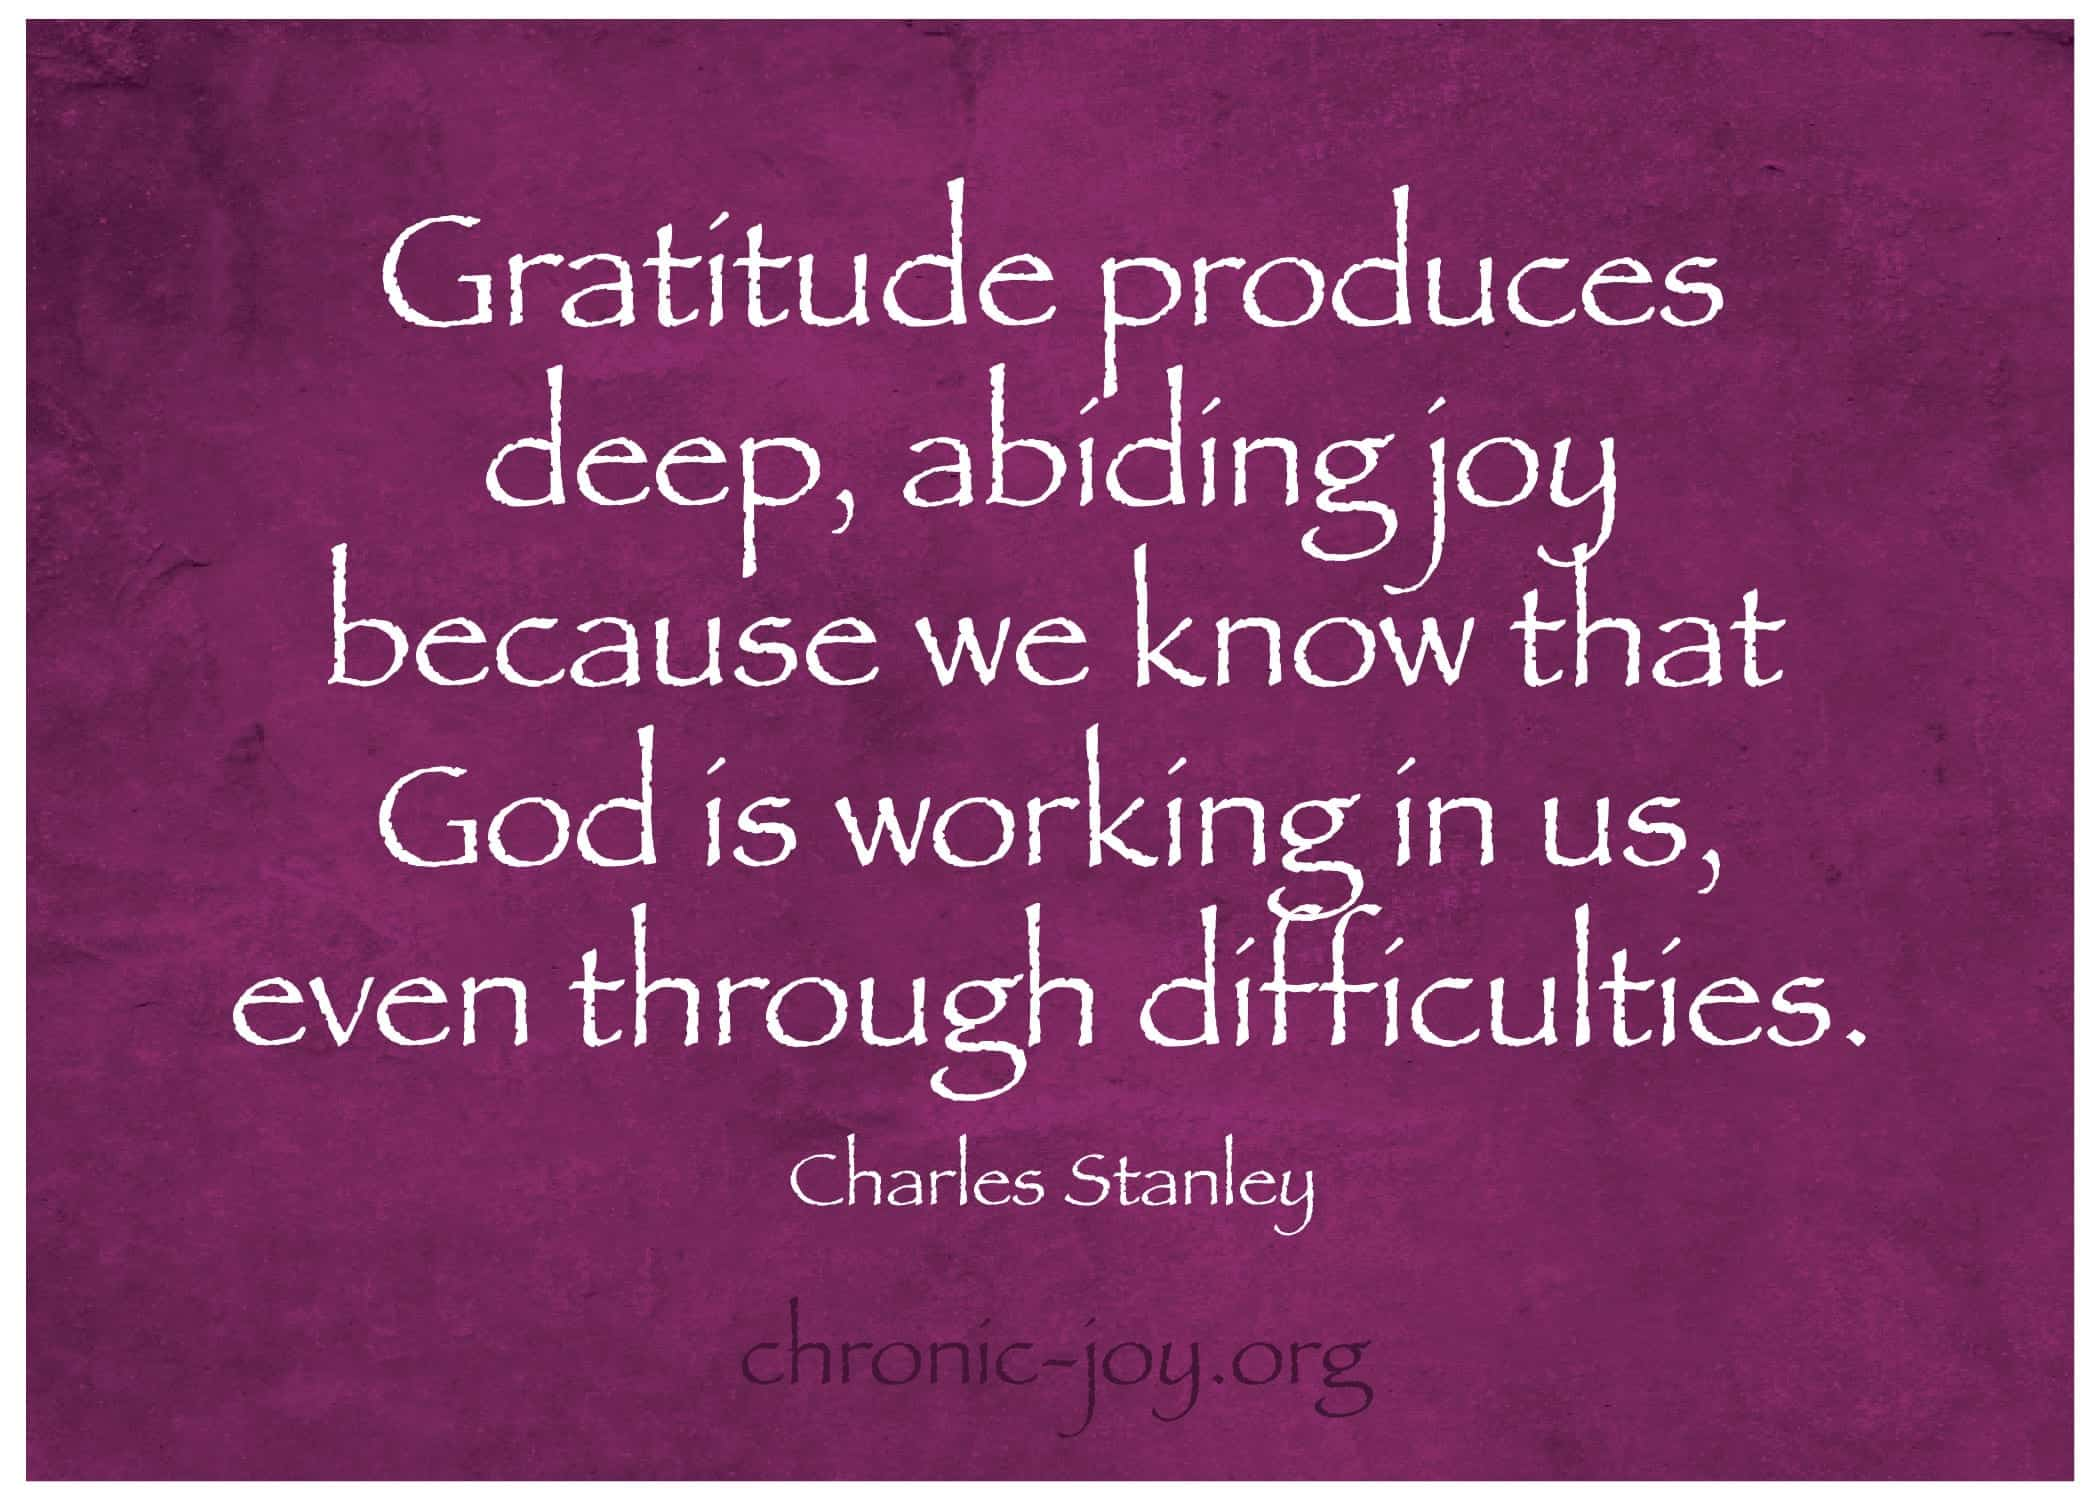 Gratitude produces deep, abiding joy...